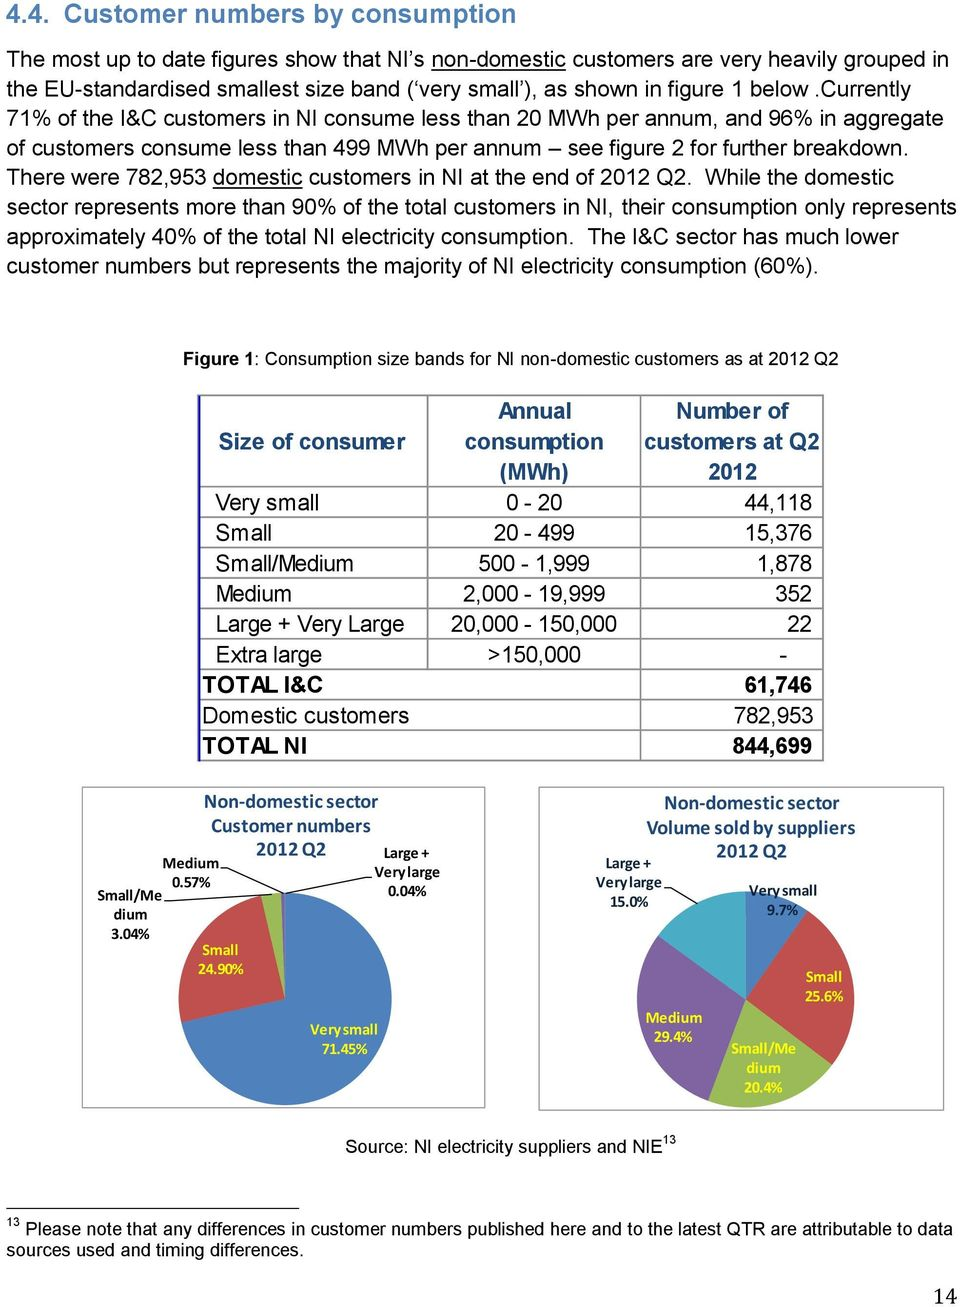 There were 782,953 domestic customers in at the end of 2012 Q2.